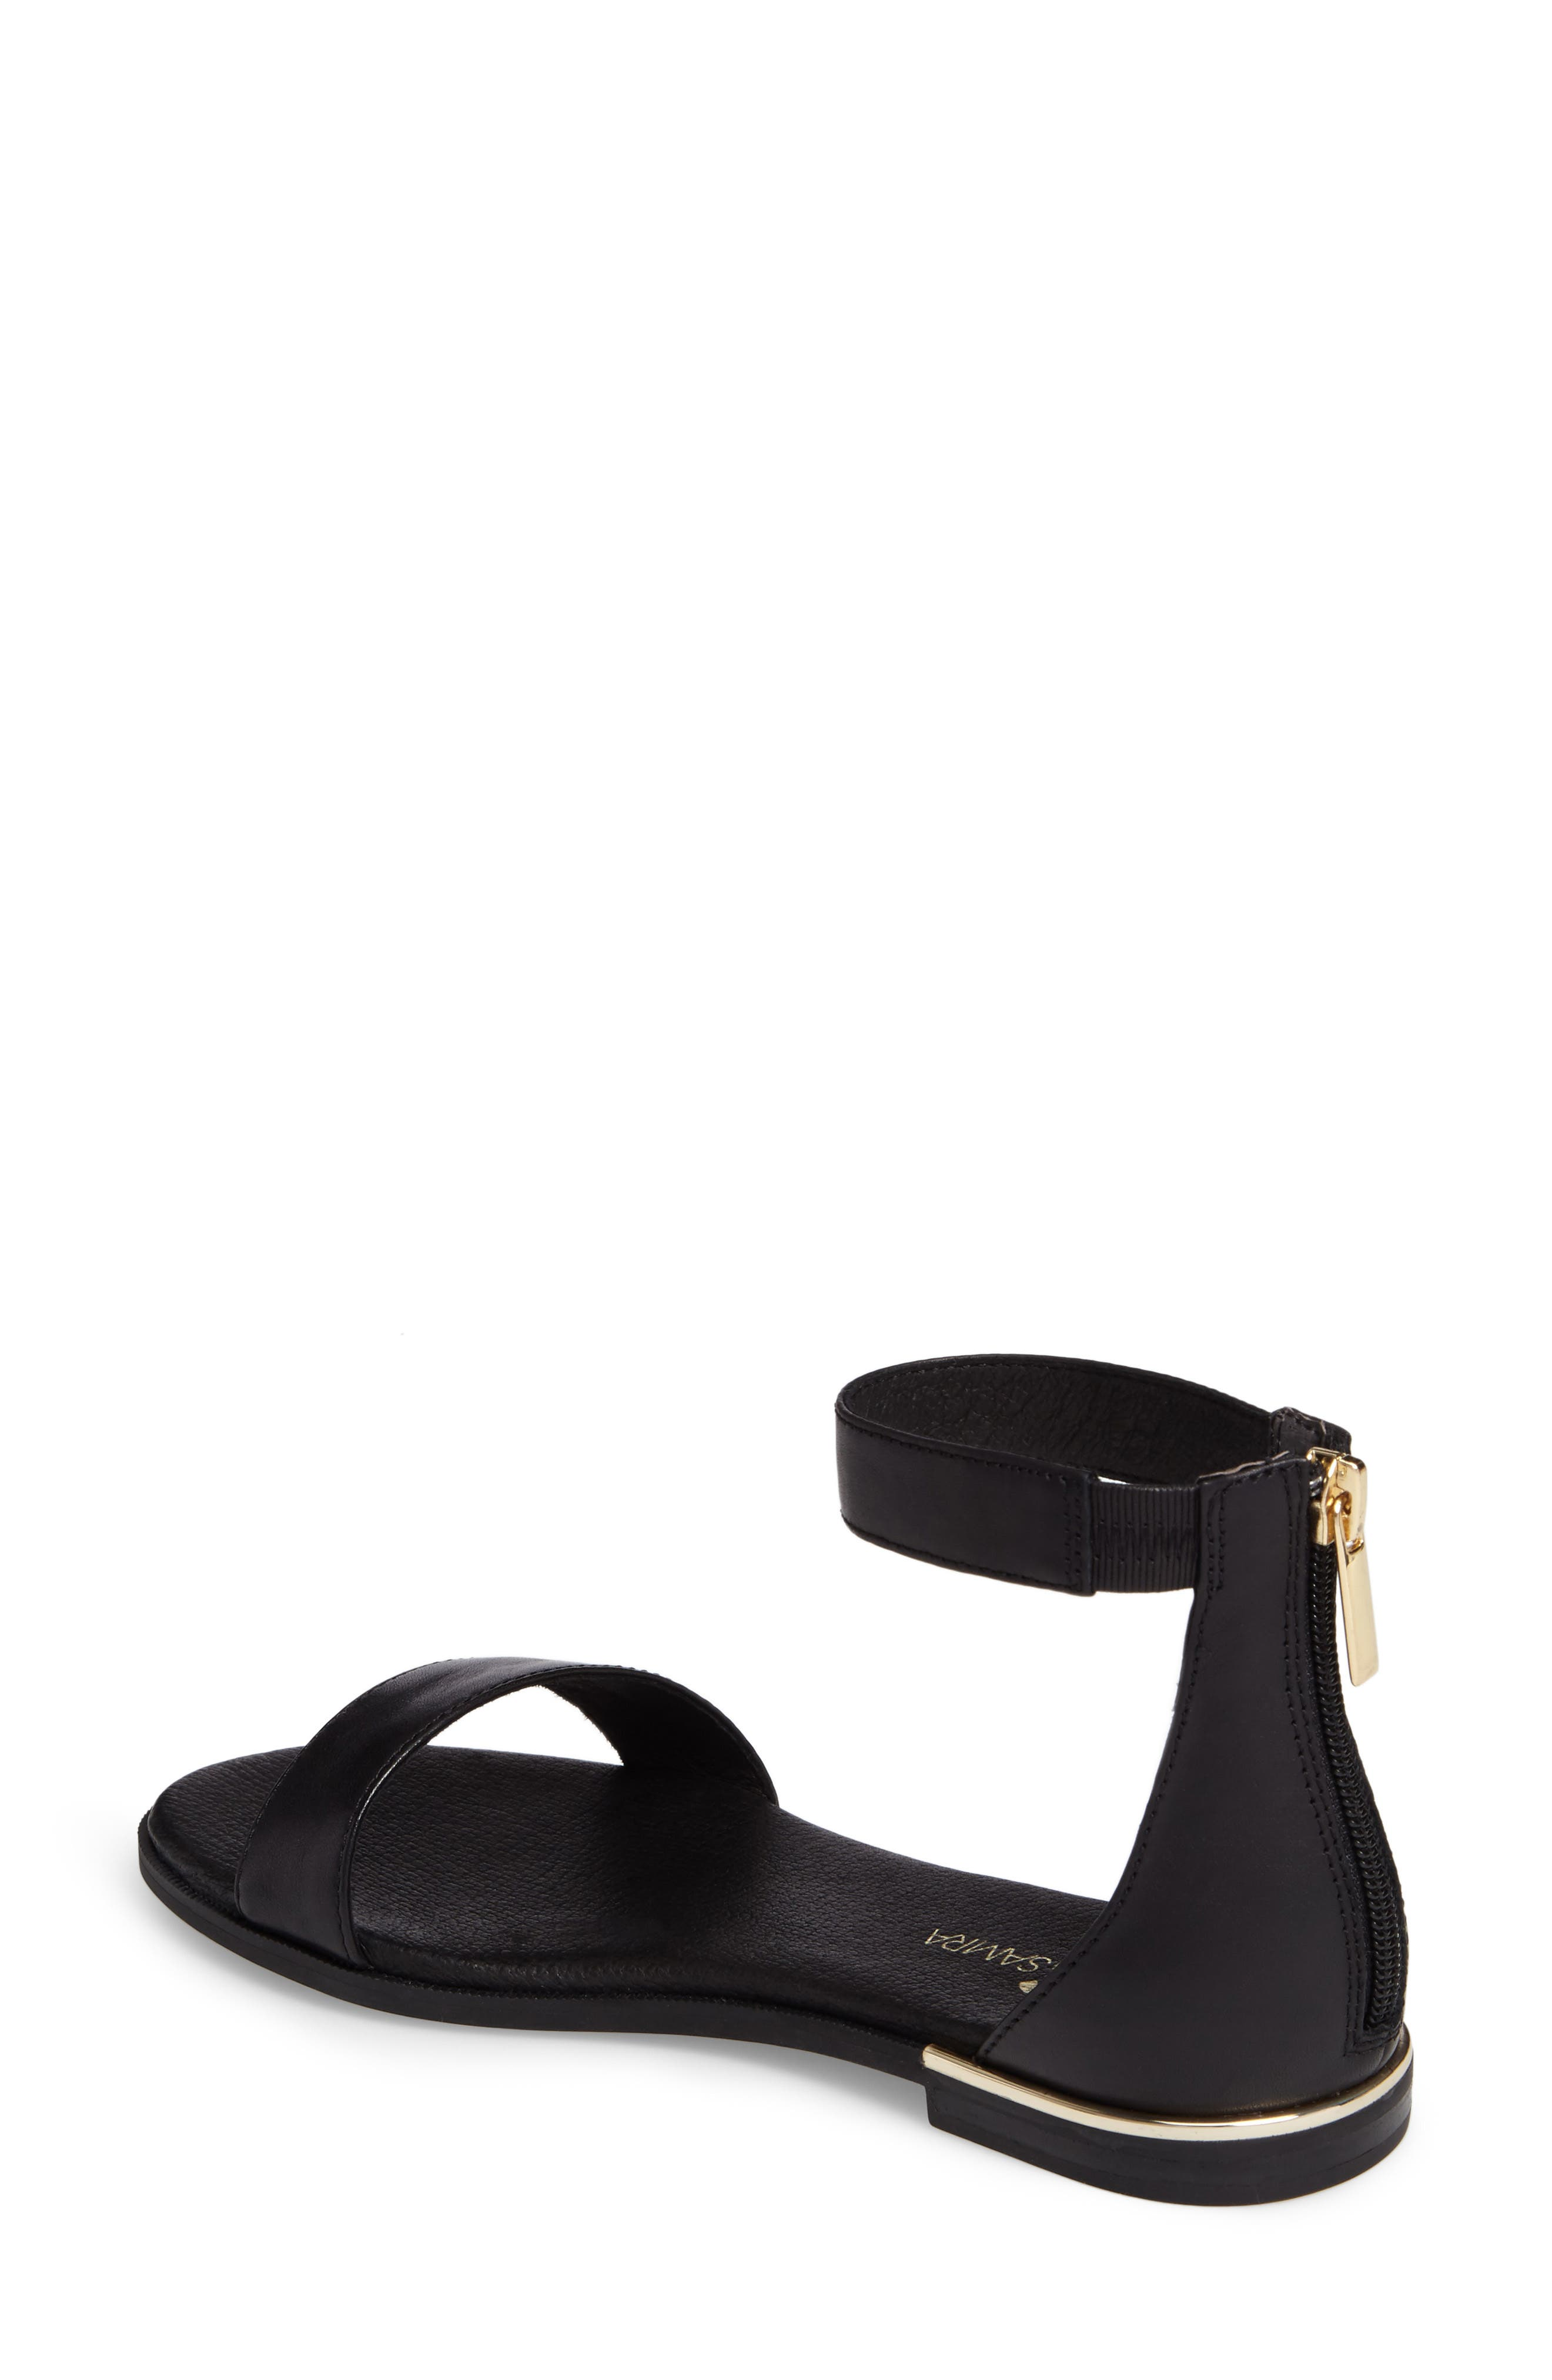 Cambelle 2.0 Sandal,                             Alternate thumbnail 2, color,                             Black Leather